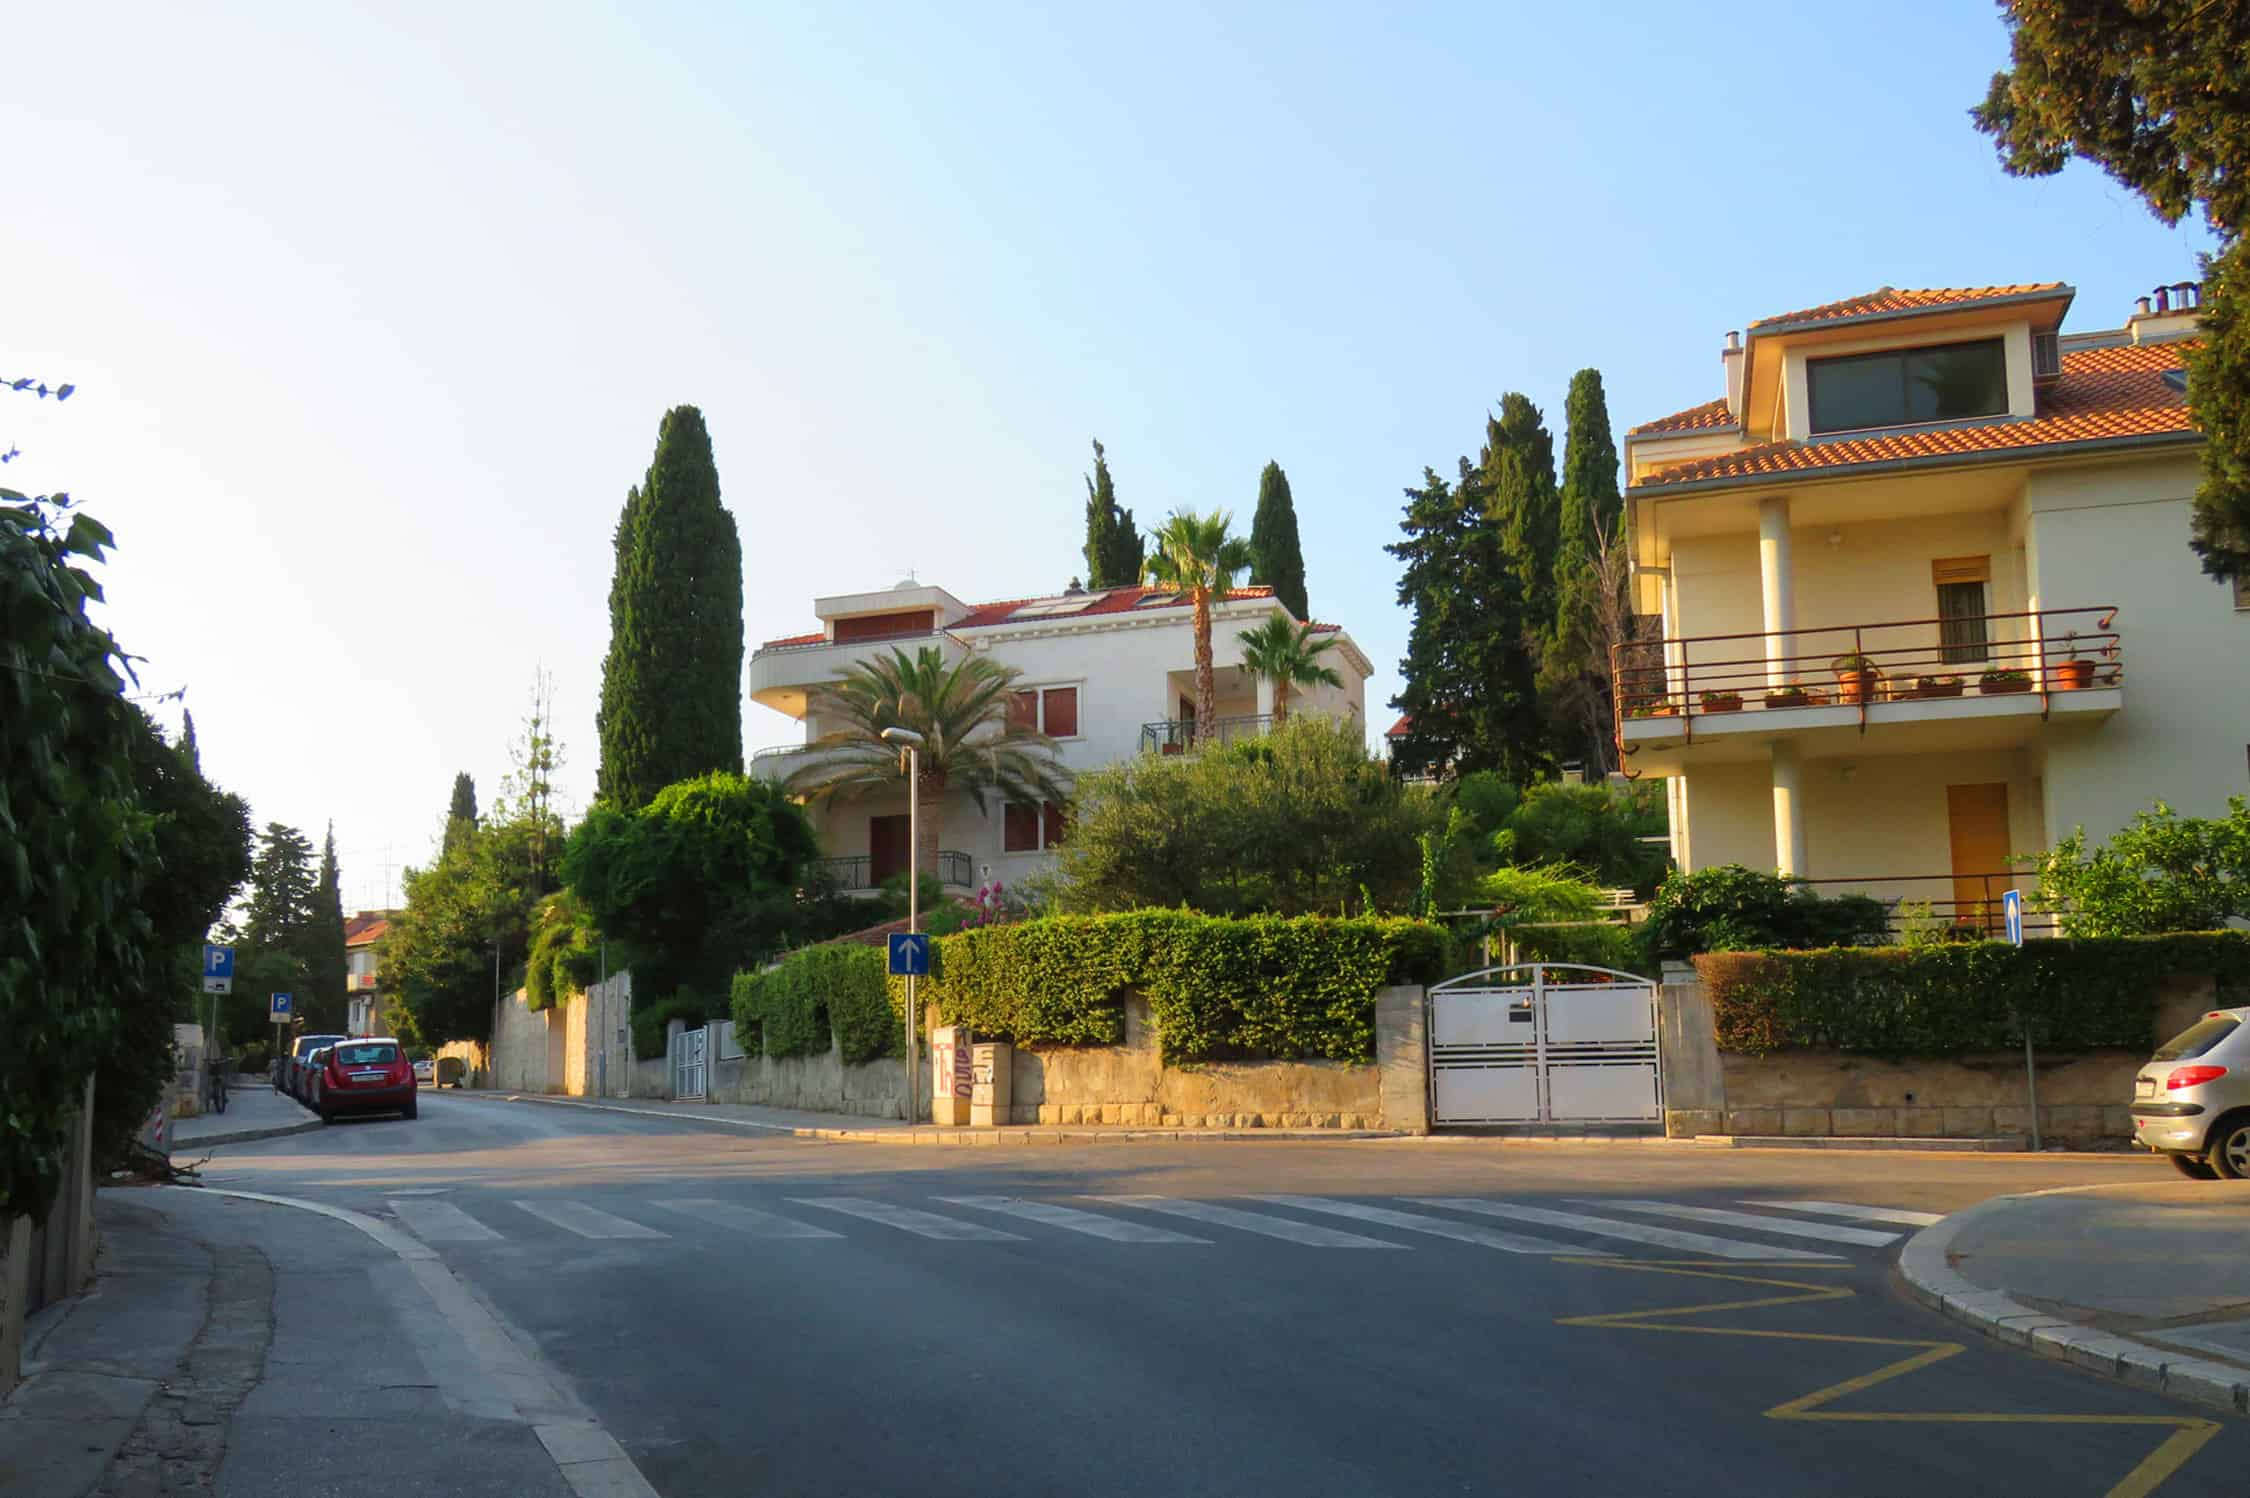 Rent our Apartment in Split! the neighborhood